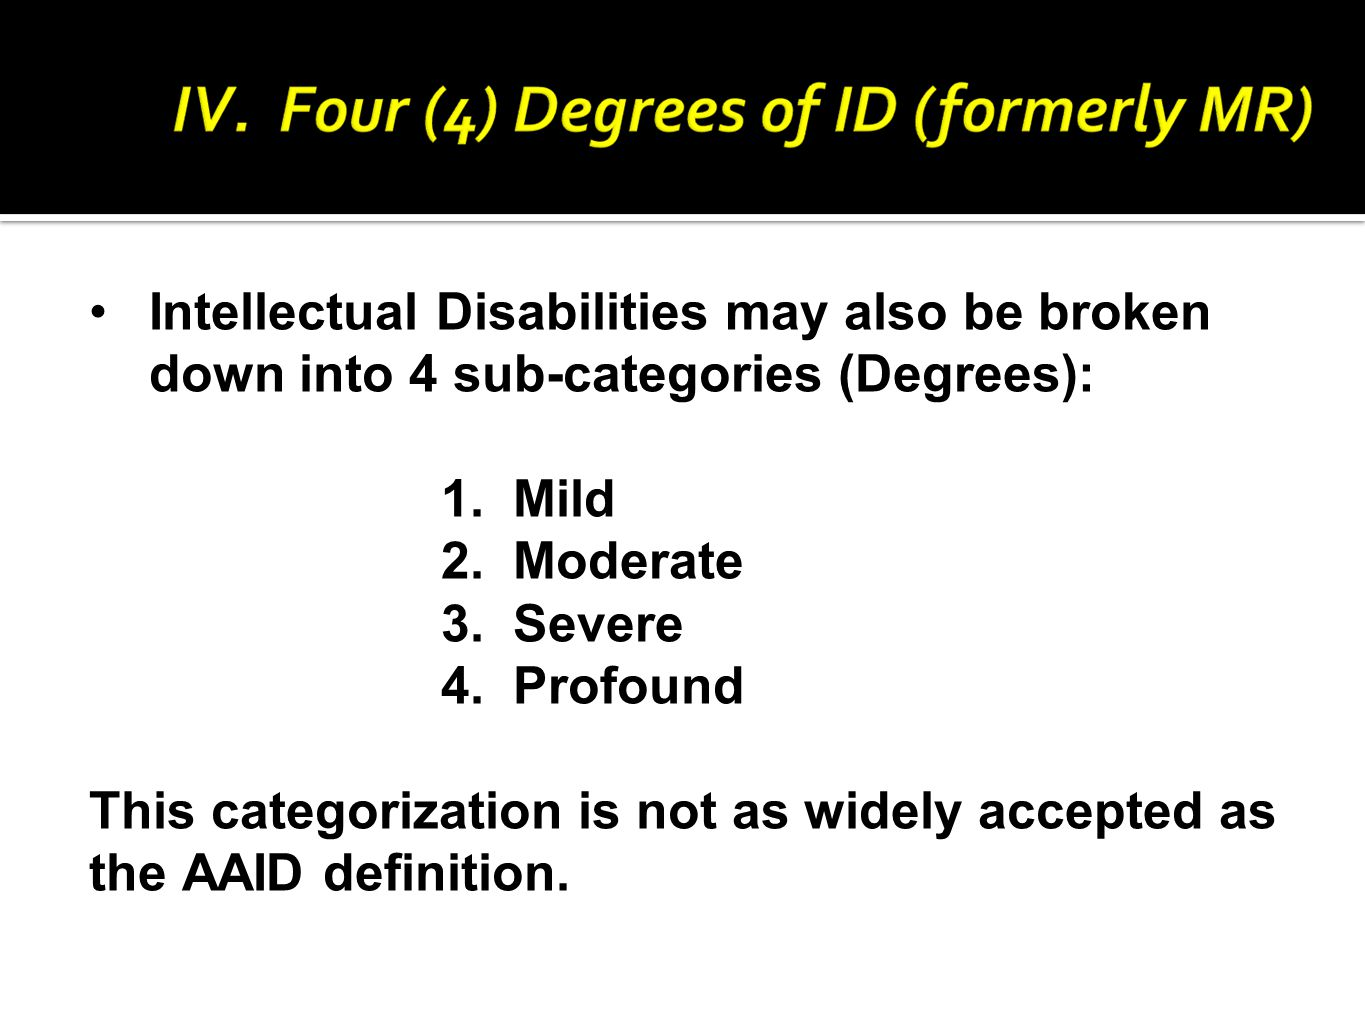 Intellectual Disabilities may also be broken down into 4 sub-categories (Degrees): 1.